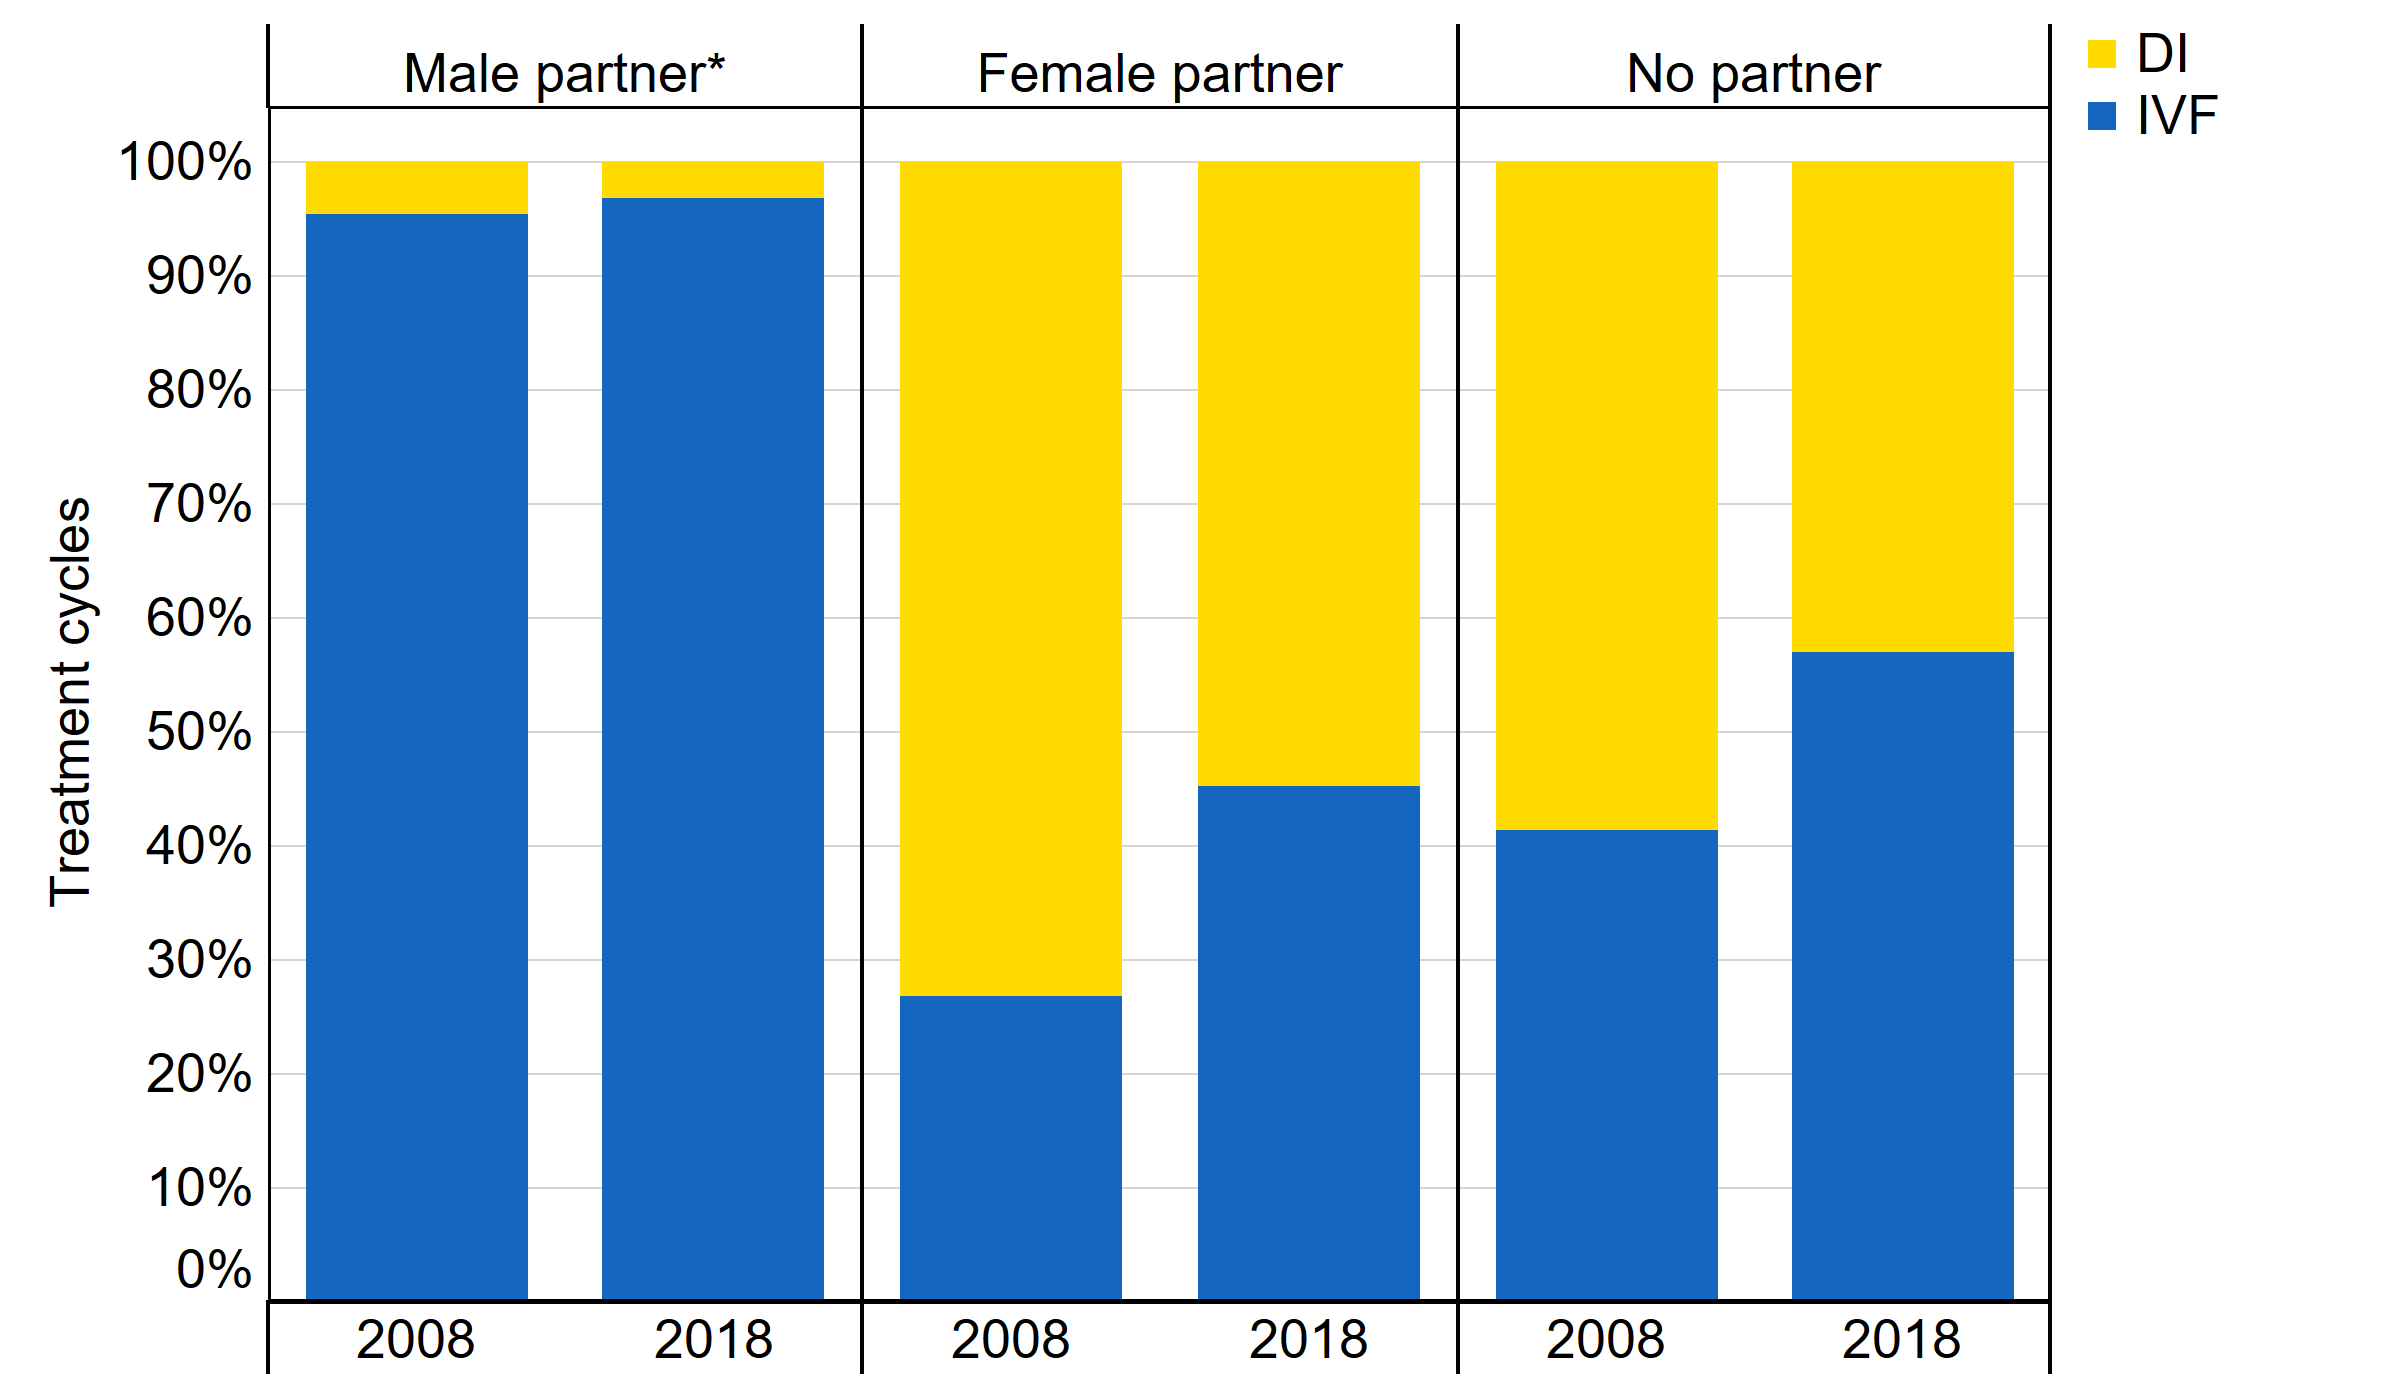 [1. Label] IVF and DI treatment cycle proportions by partner type, 2008 and 2018. [2. Construction] This stacked bar graph shows the proportions of cycles using IVF and DI by partner type for 2008 and 2018. [3. Summary] IVF usage as a proportion of cycles has increased for patients in female same-sex relationships and single patients but has not changed for patients with male partners. IVF is not the most common treatment for single patients in 2018. [4. Data] The figures are Year, Male partner IVF, Male partner DI, Female partner IVF, Female partner DI, No partner IVF, No partner DI: 2008, 95%, 5%, 27%, 73%, 41%, 59% 2018, 97%, 3%, 45%, 55%, 57%, 43%.